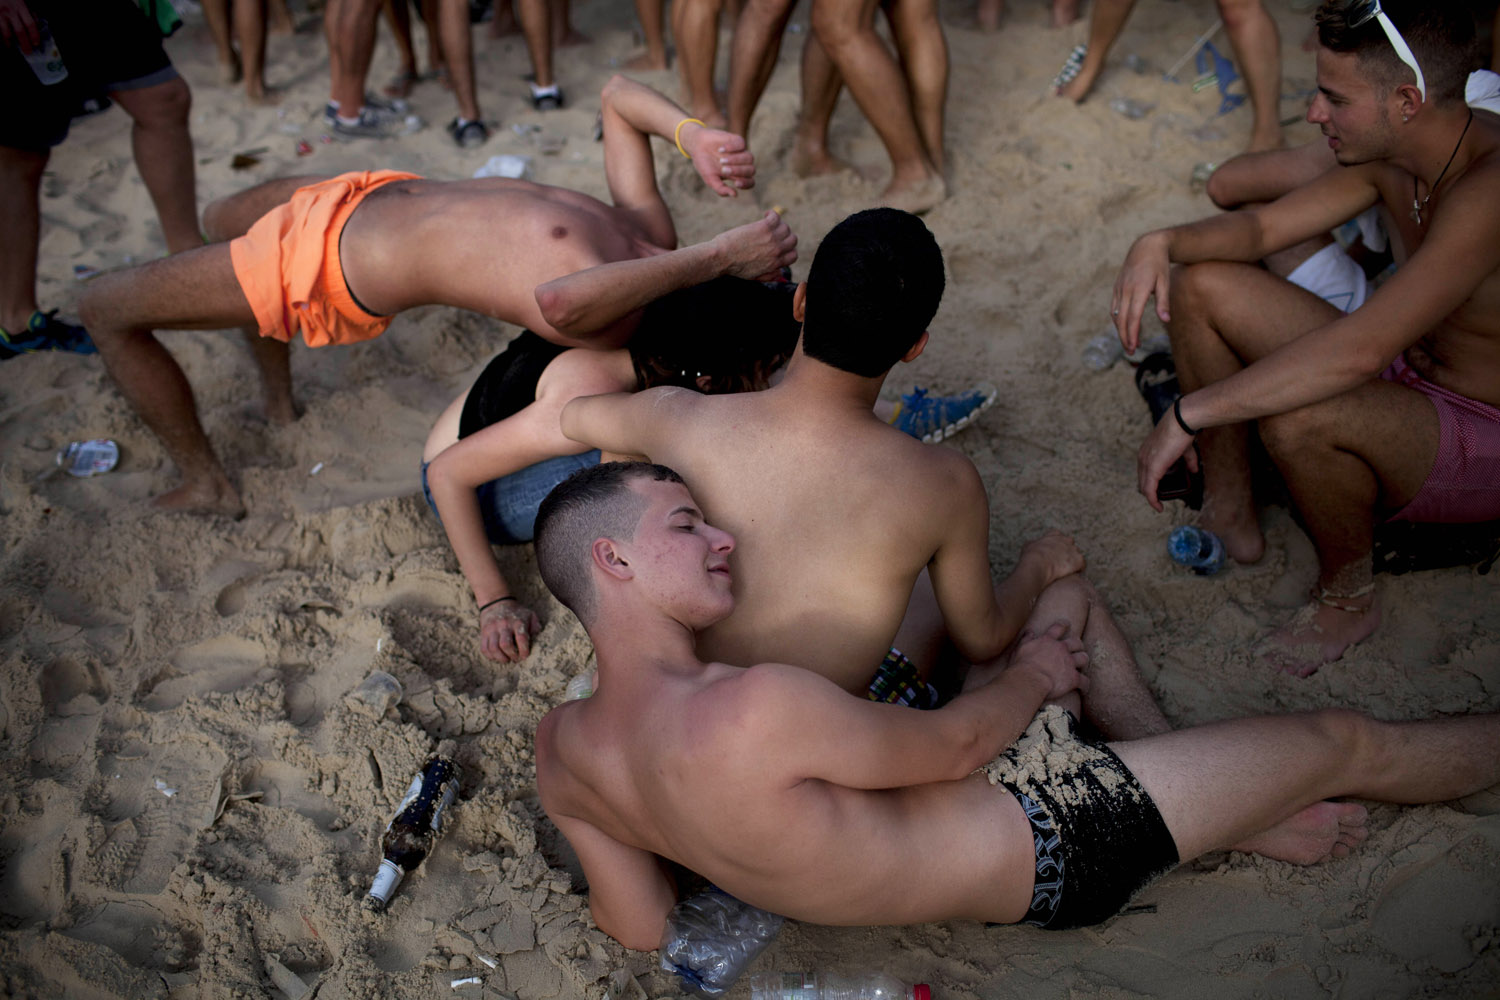 June 7, 2013. Israelis participate in the annual Gay Pride parade on the beach of Tel Aviv, Israel.